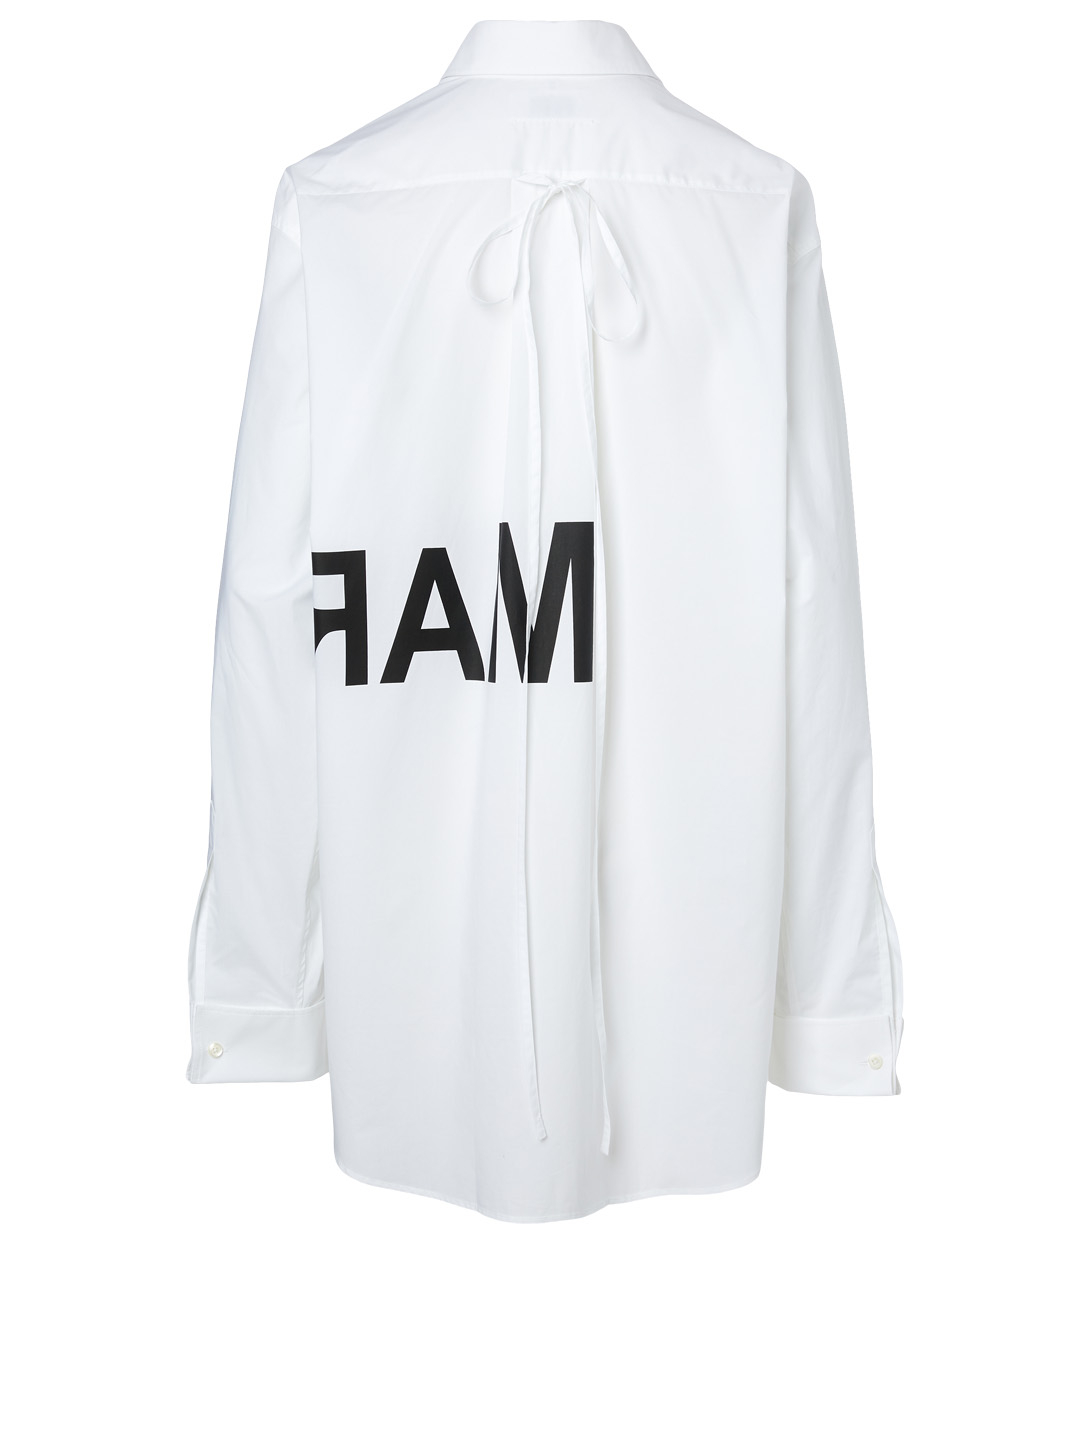 MM6 MAISON MARGIELA Cotton Logo Shirt Women's White